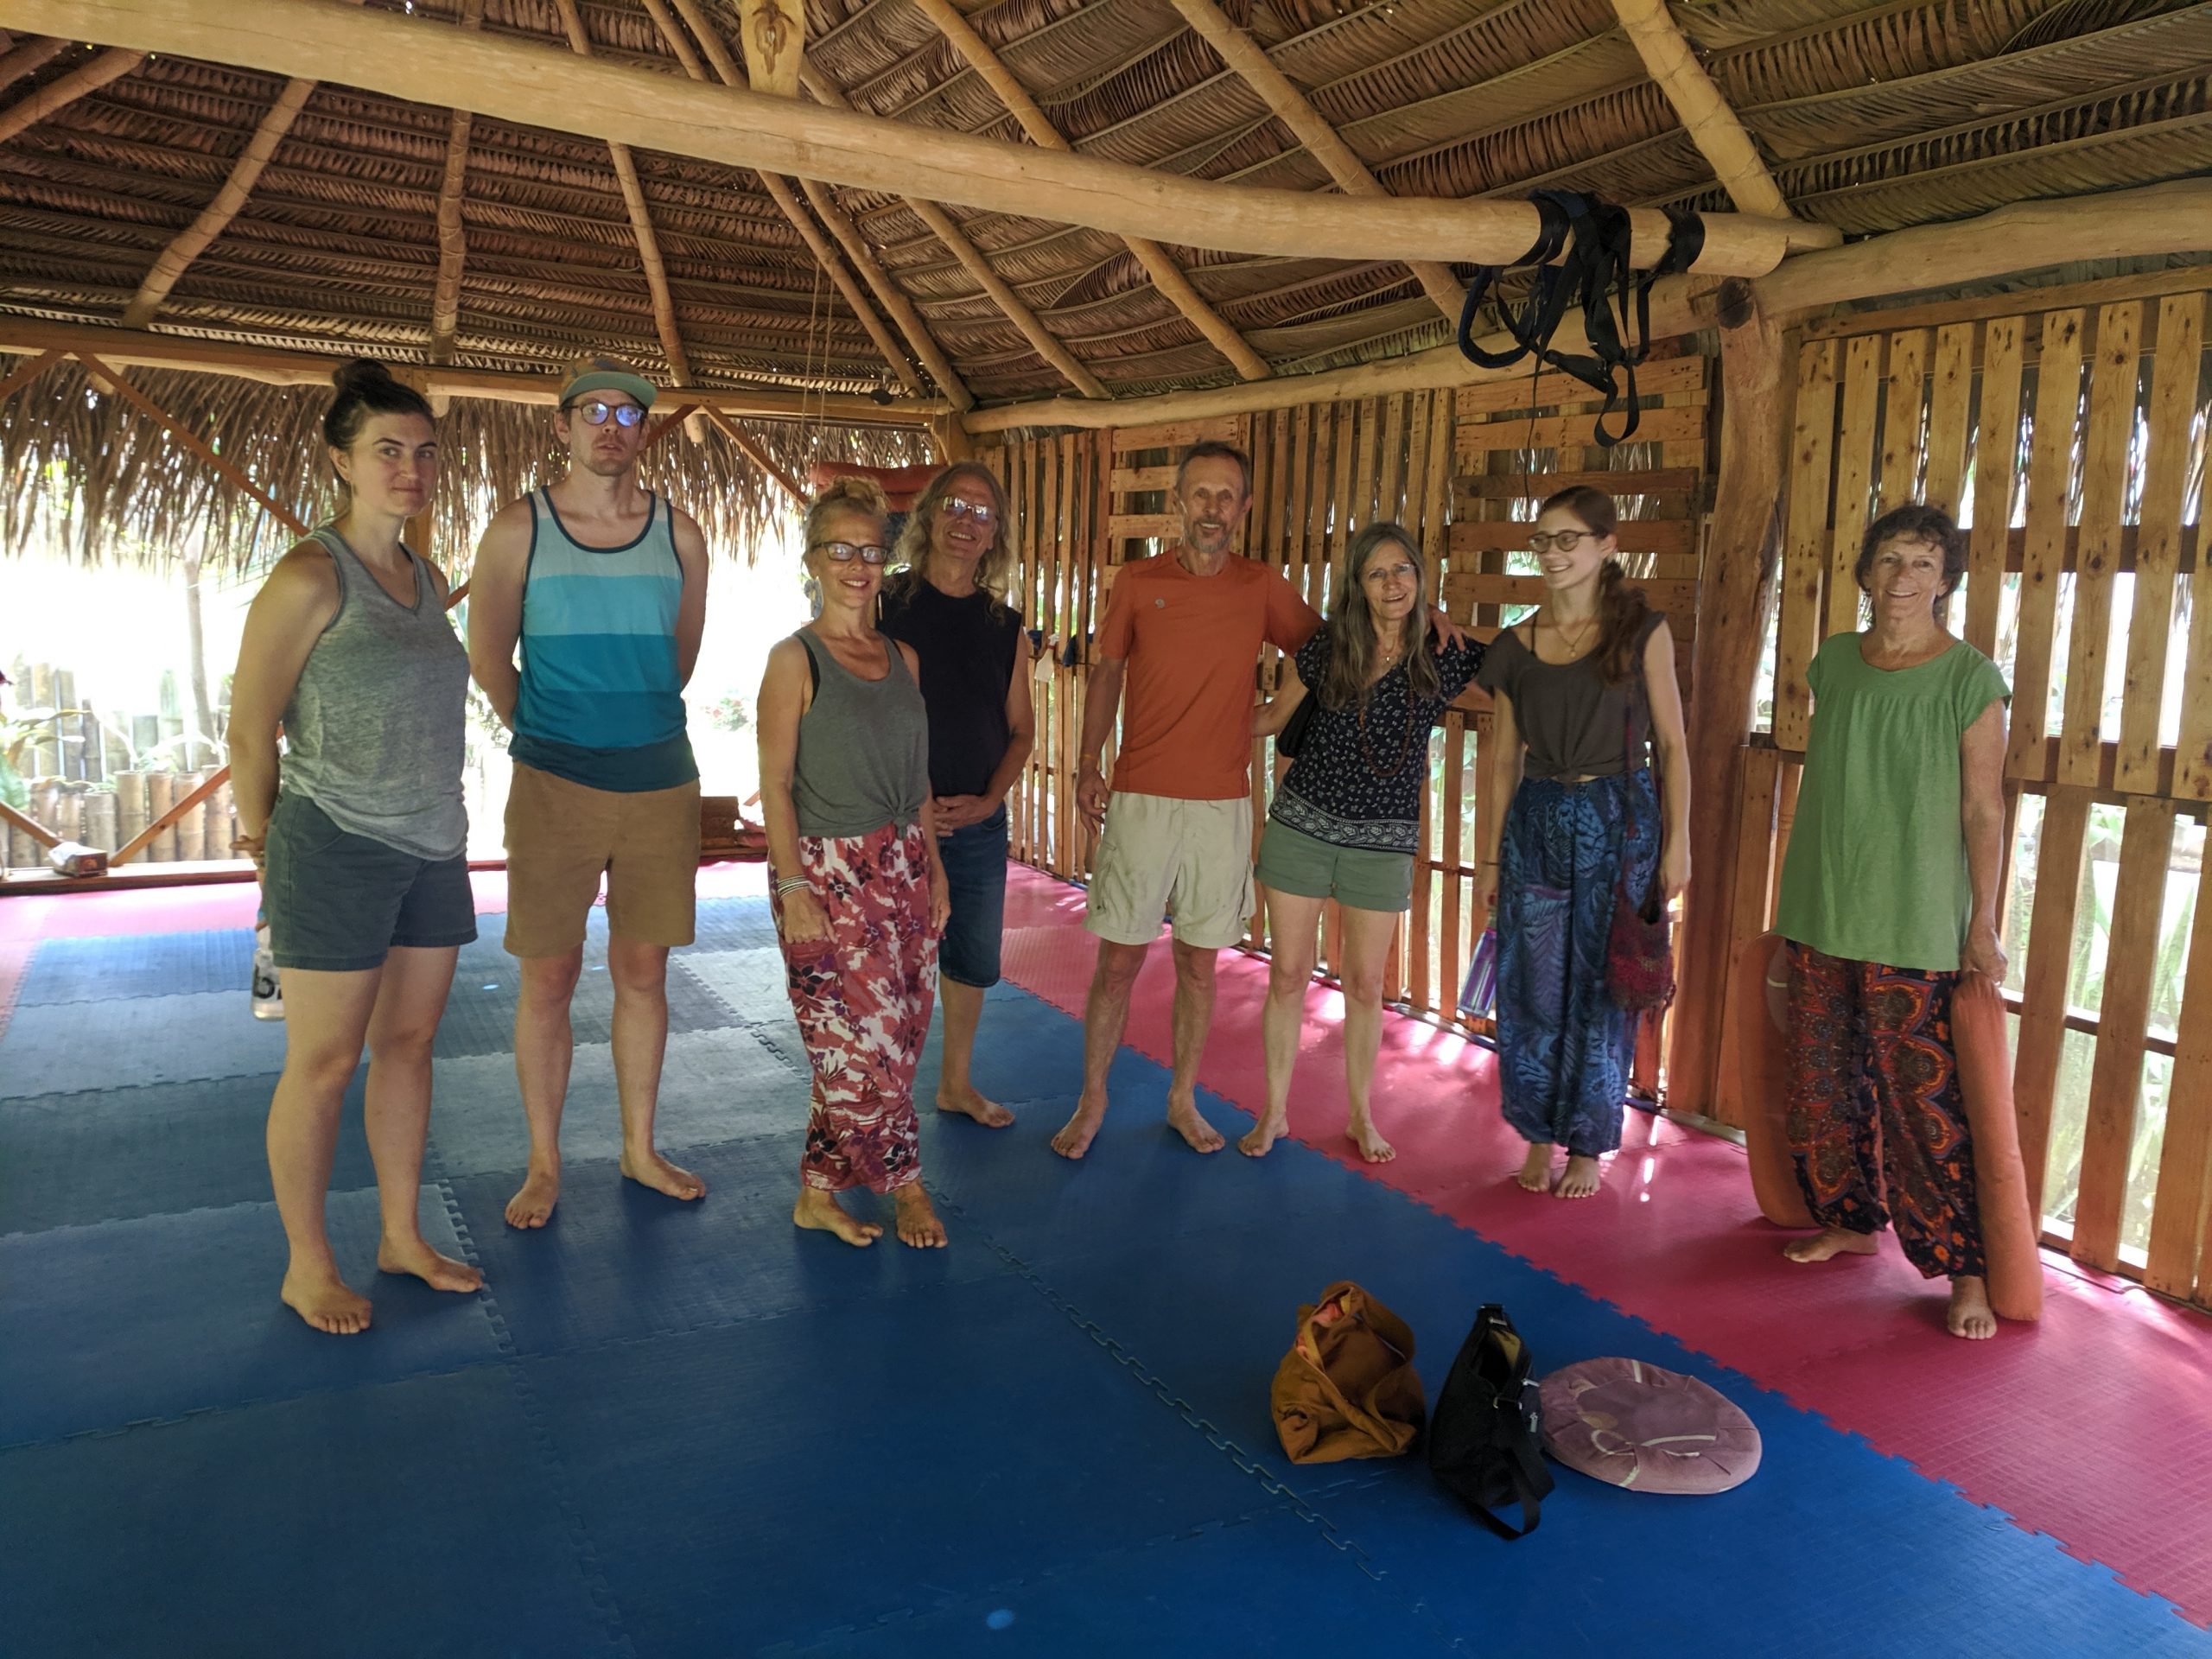 group picture with some regulars, a couple of travelers, and our Dharma sister after a wonderful group and meditation.